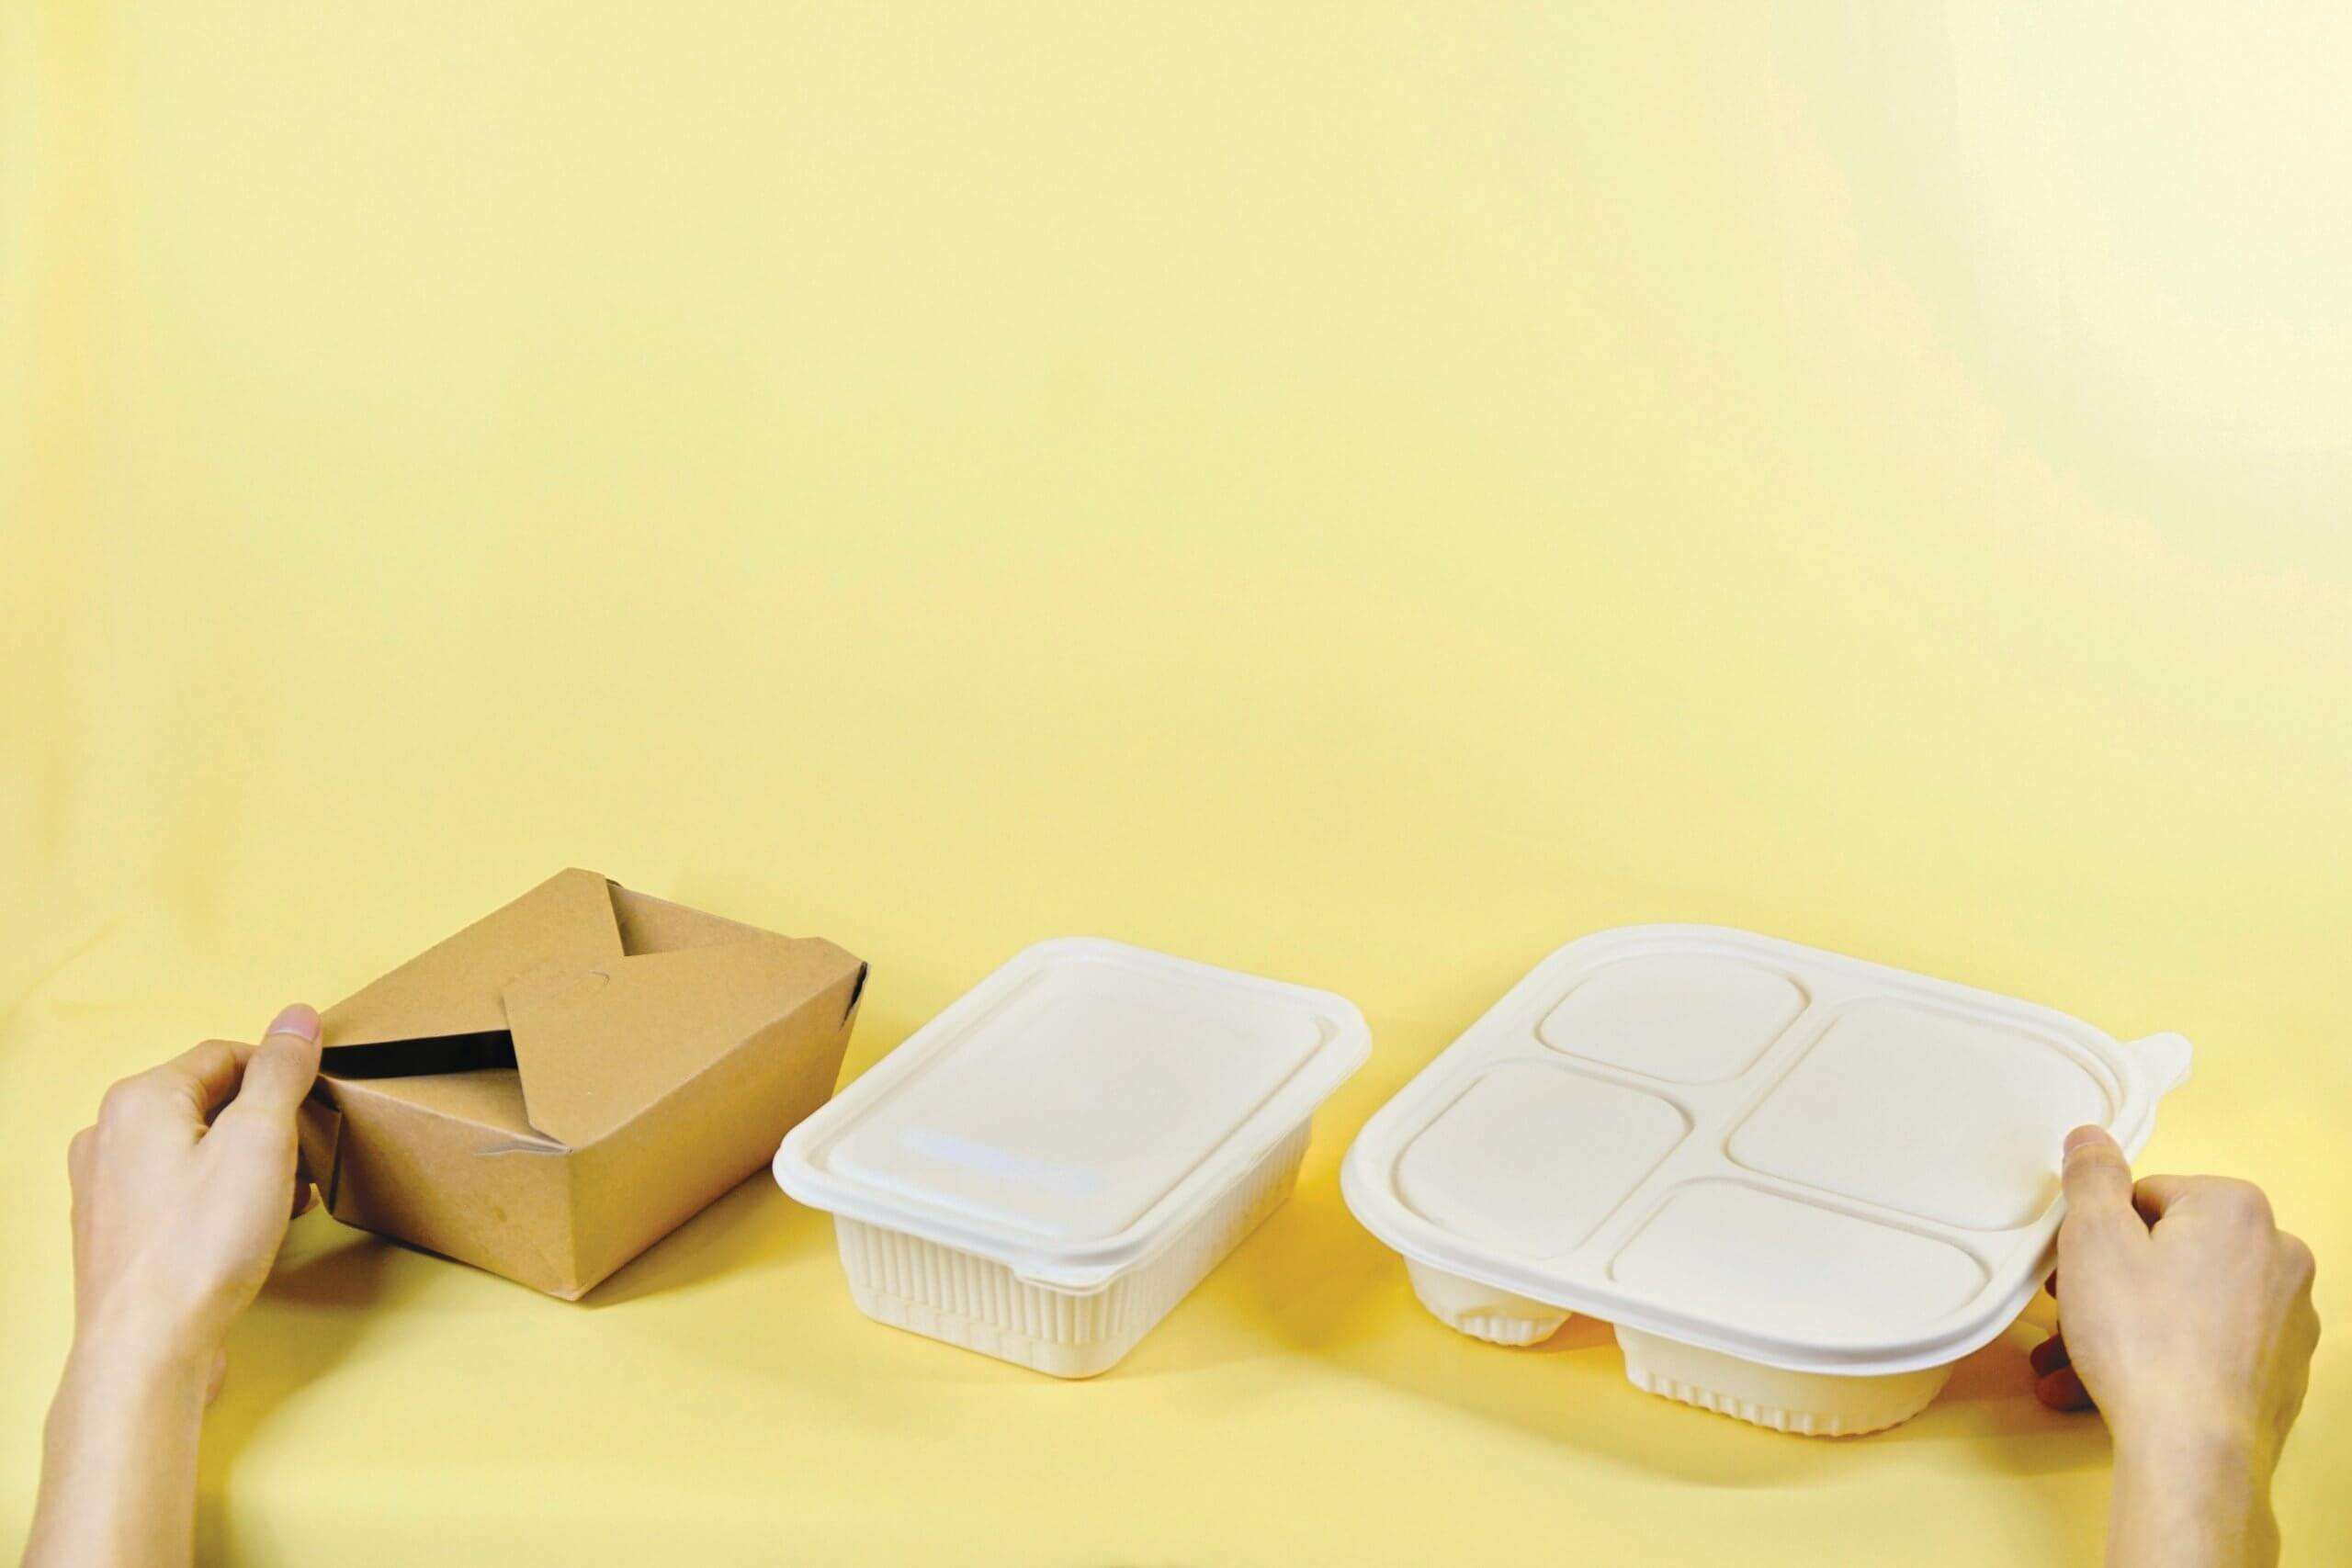 cardboard and plastic food boxes